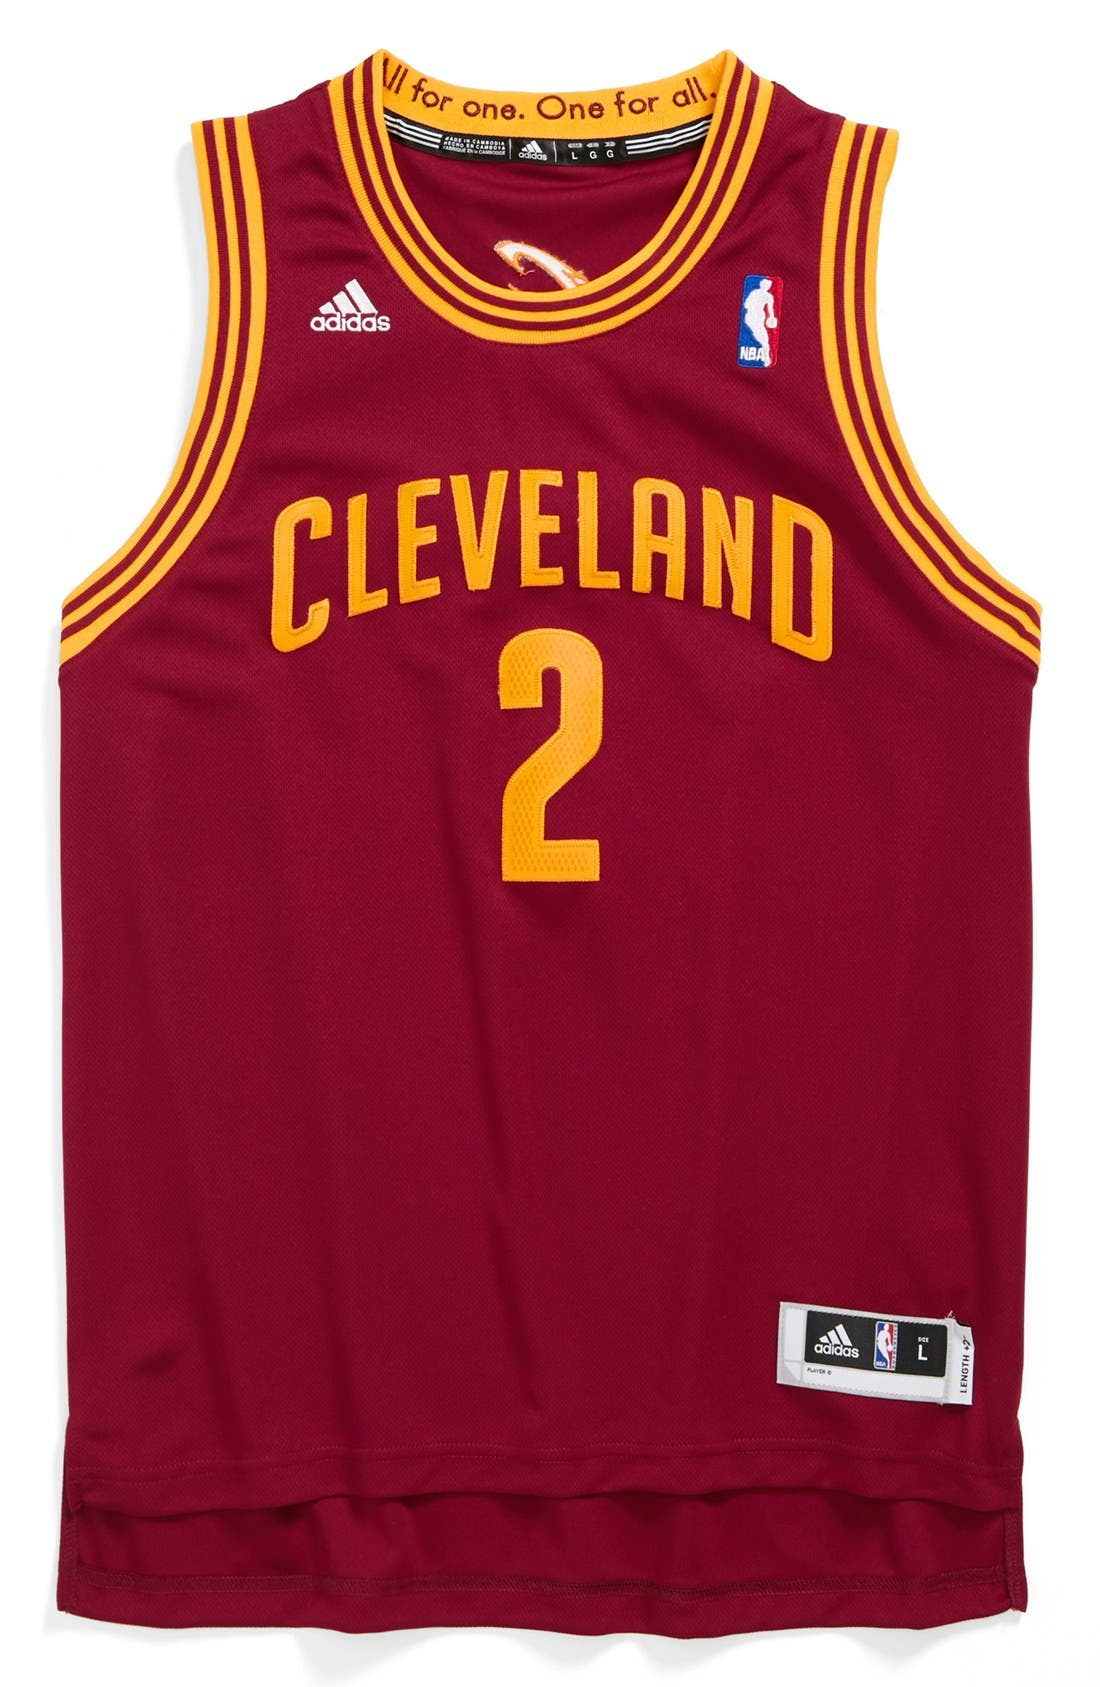 Main Image - adidas 'Cleveland Cavaliers, Kyrie Irving - Swingman Road' Jersey (Big Boys)